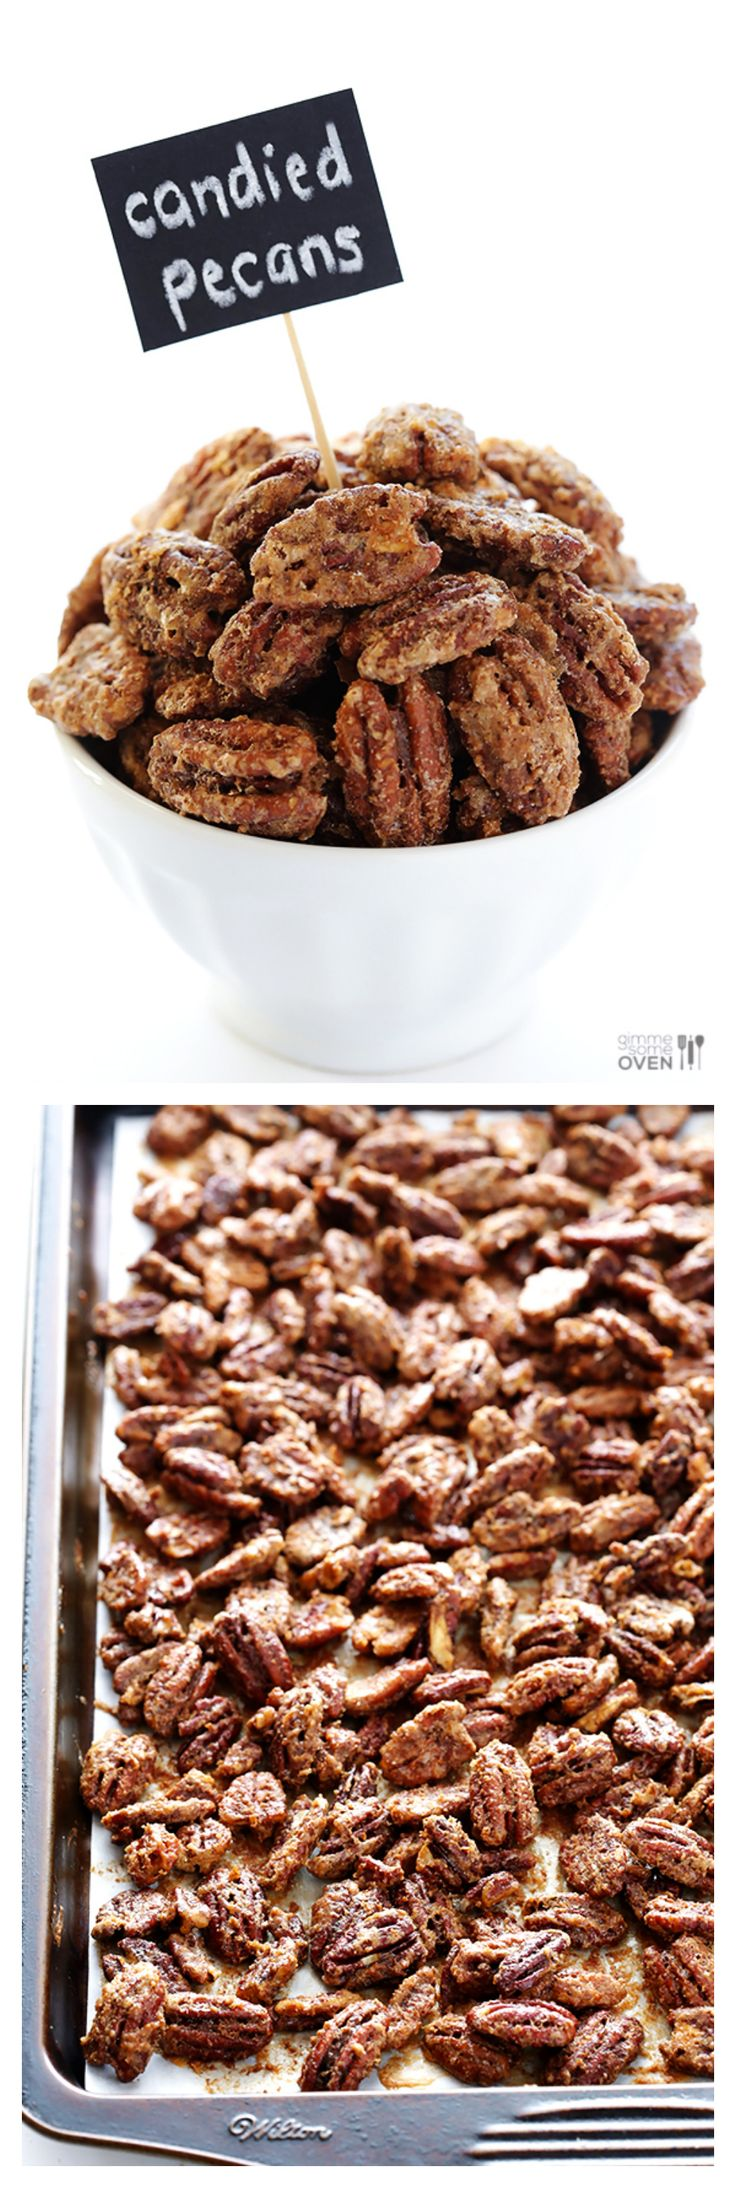 Candied Pecans -- made with just 7 easy ingredients, and perfect for toppings salads, desserts, or just eating plain! | gimmesomeoven.com